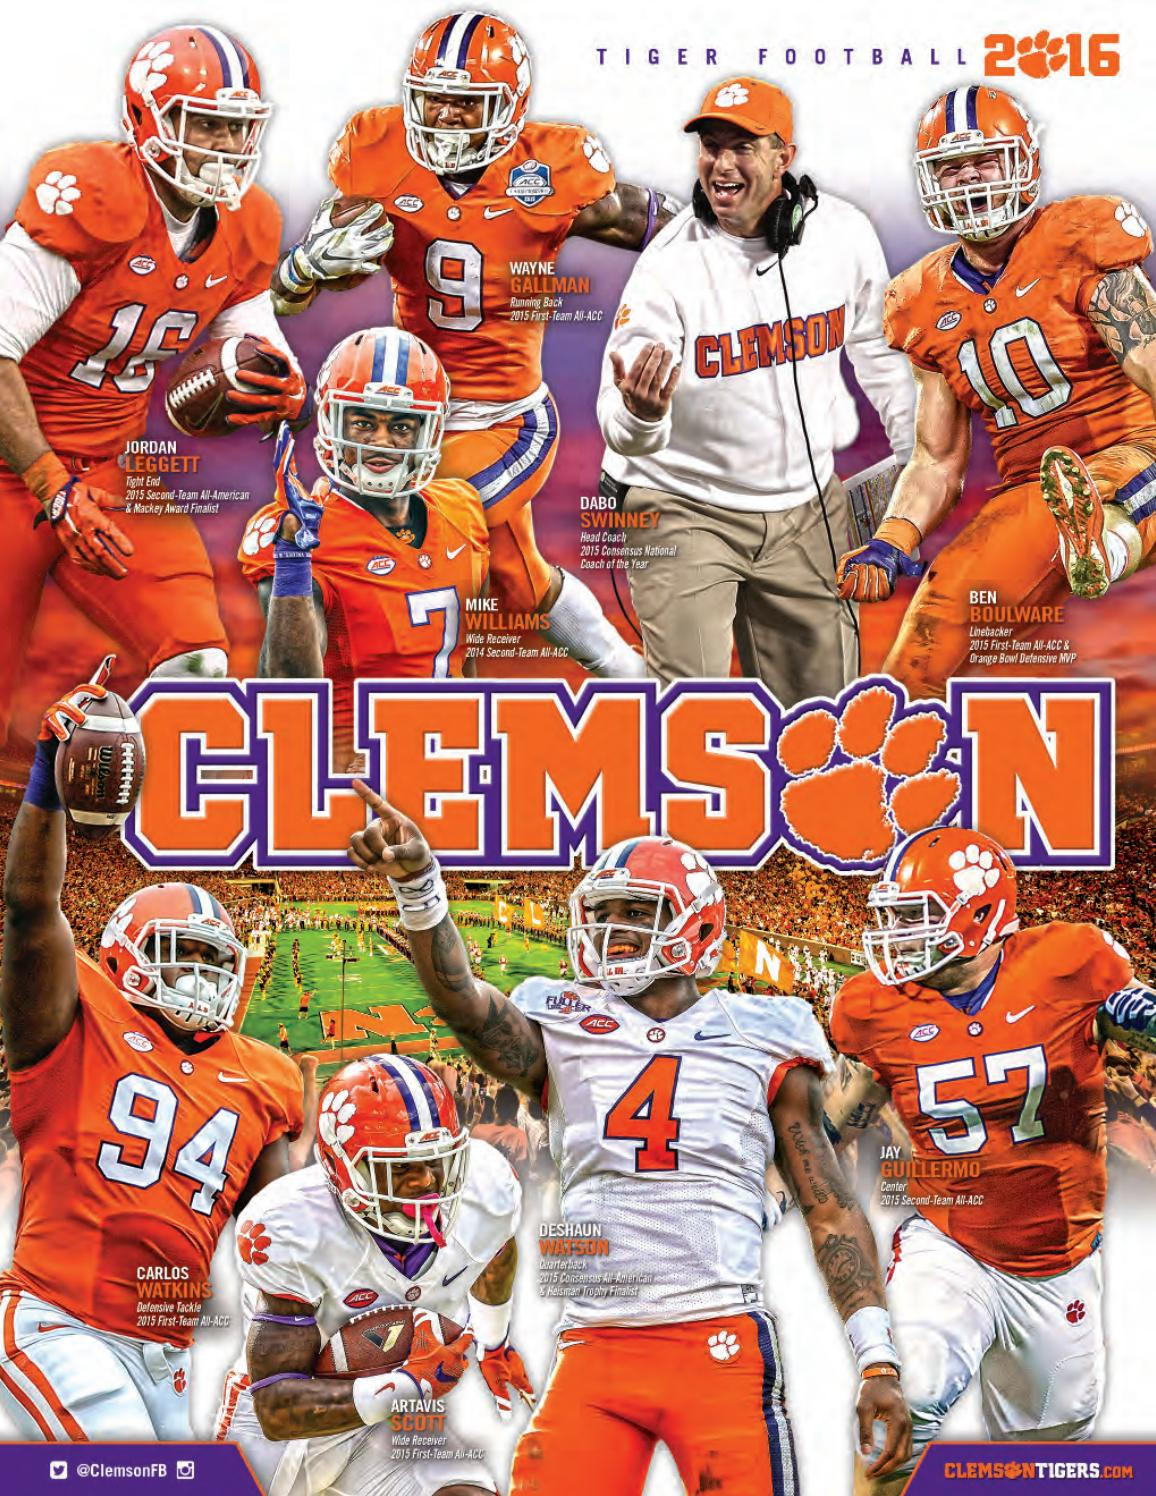 19b5acc894b 2016 Clemson Football Media Guide by Clemson Tigers - issuu